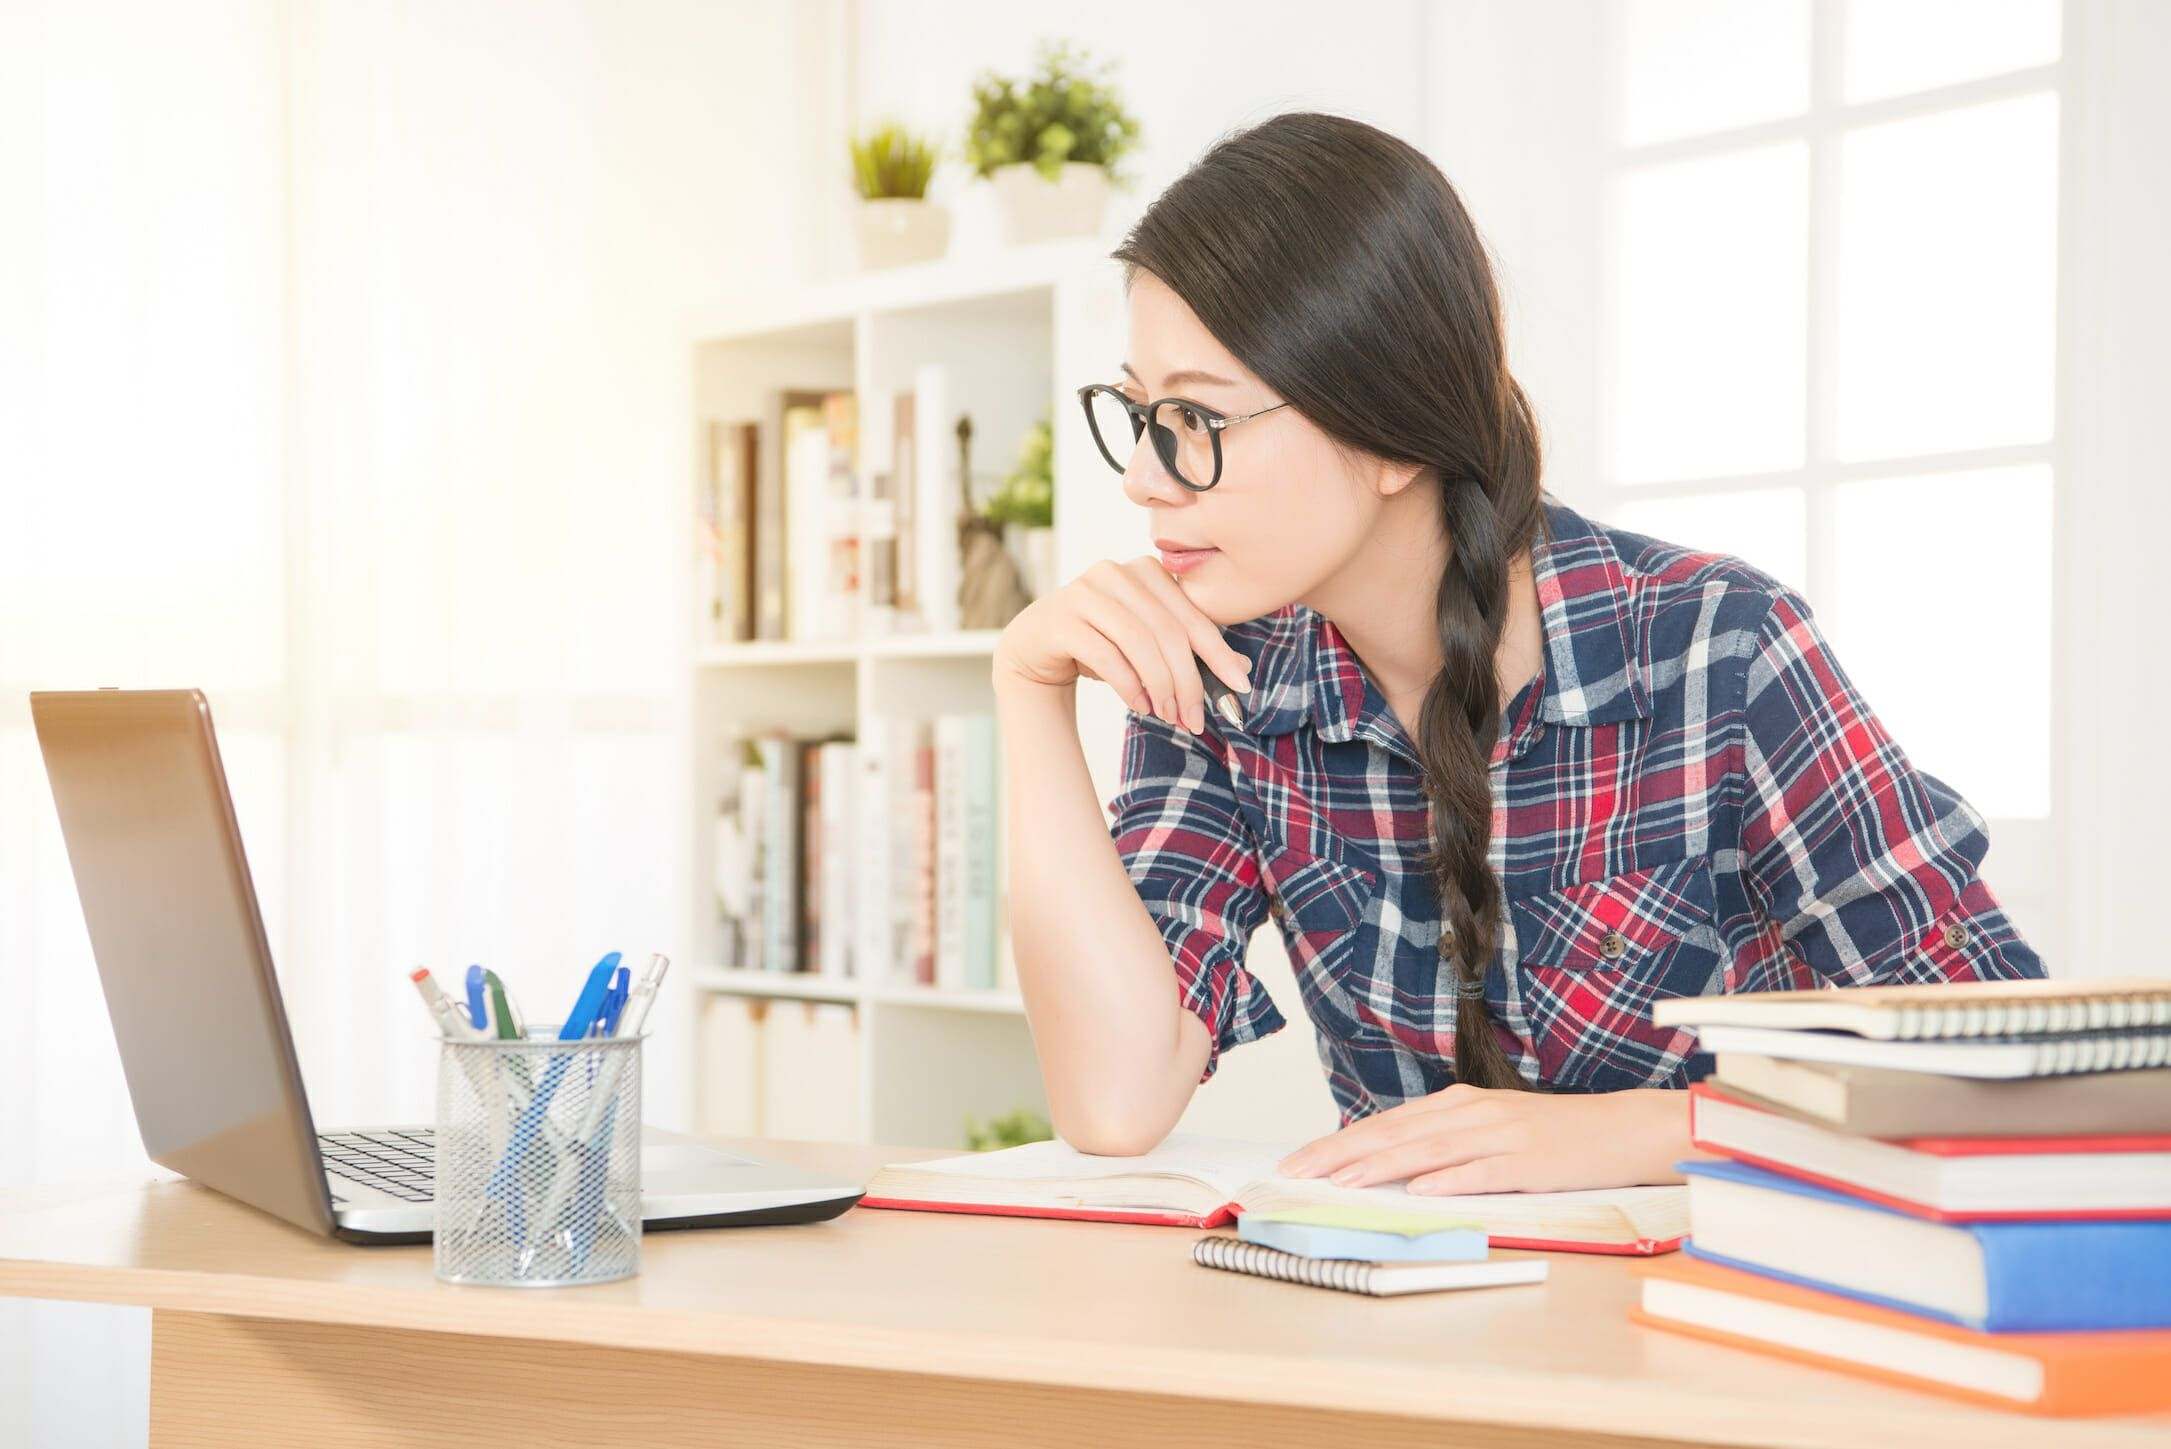 Online Learning - Woman Studying at home